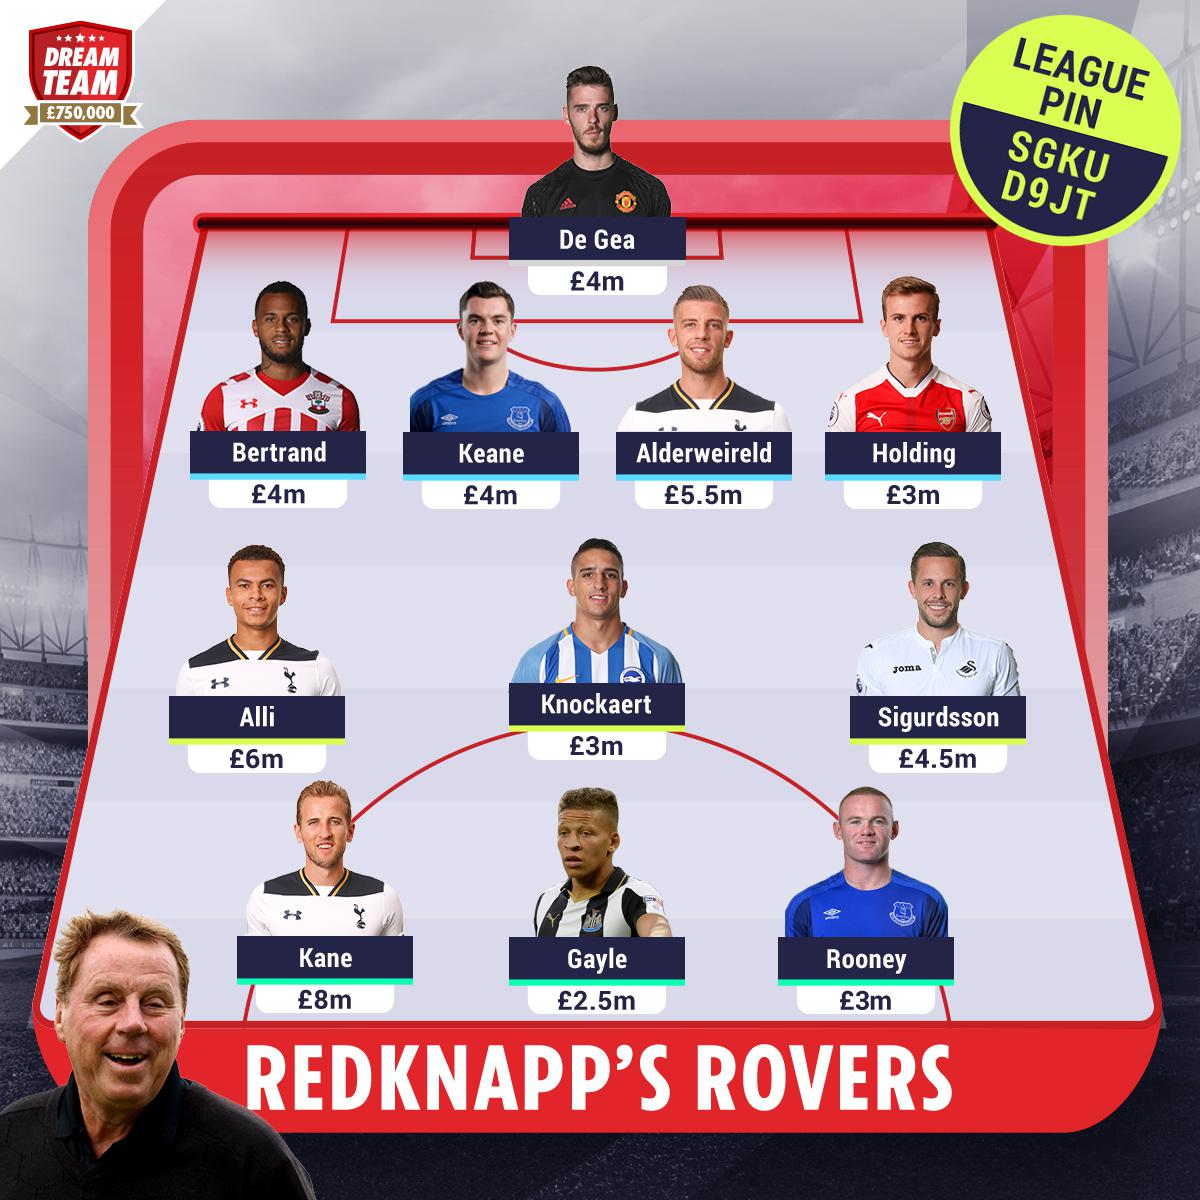 Harry Redknapp's Dream Team - reckon you can beat it?